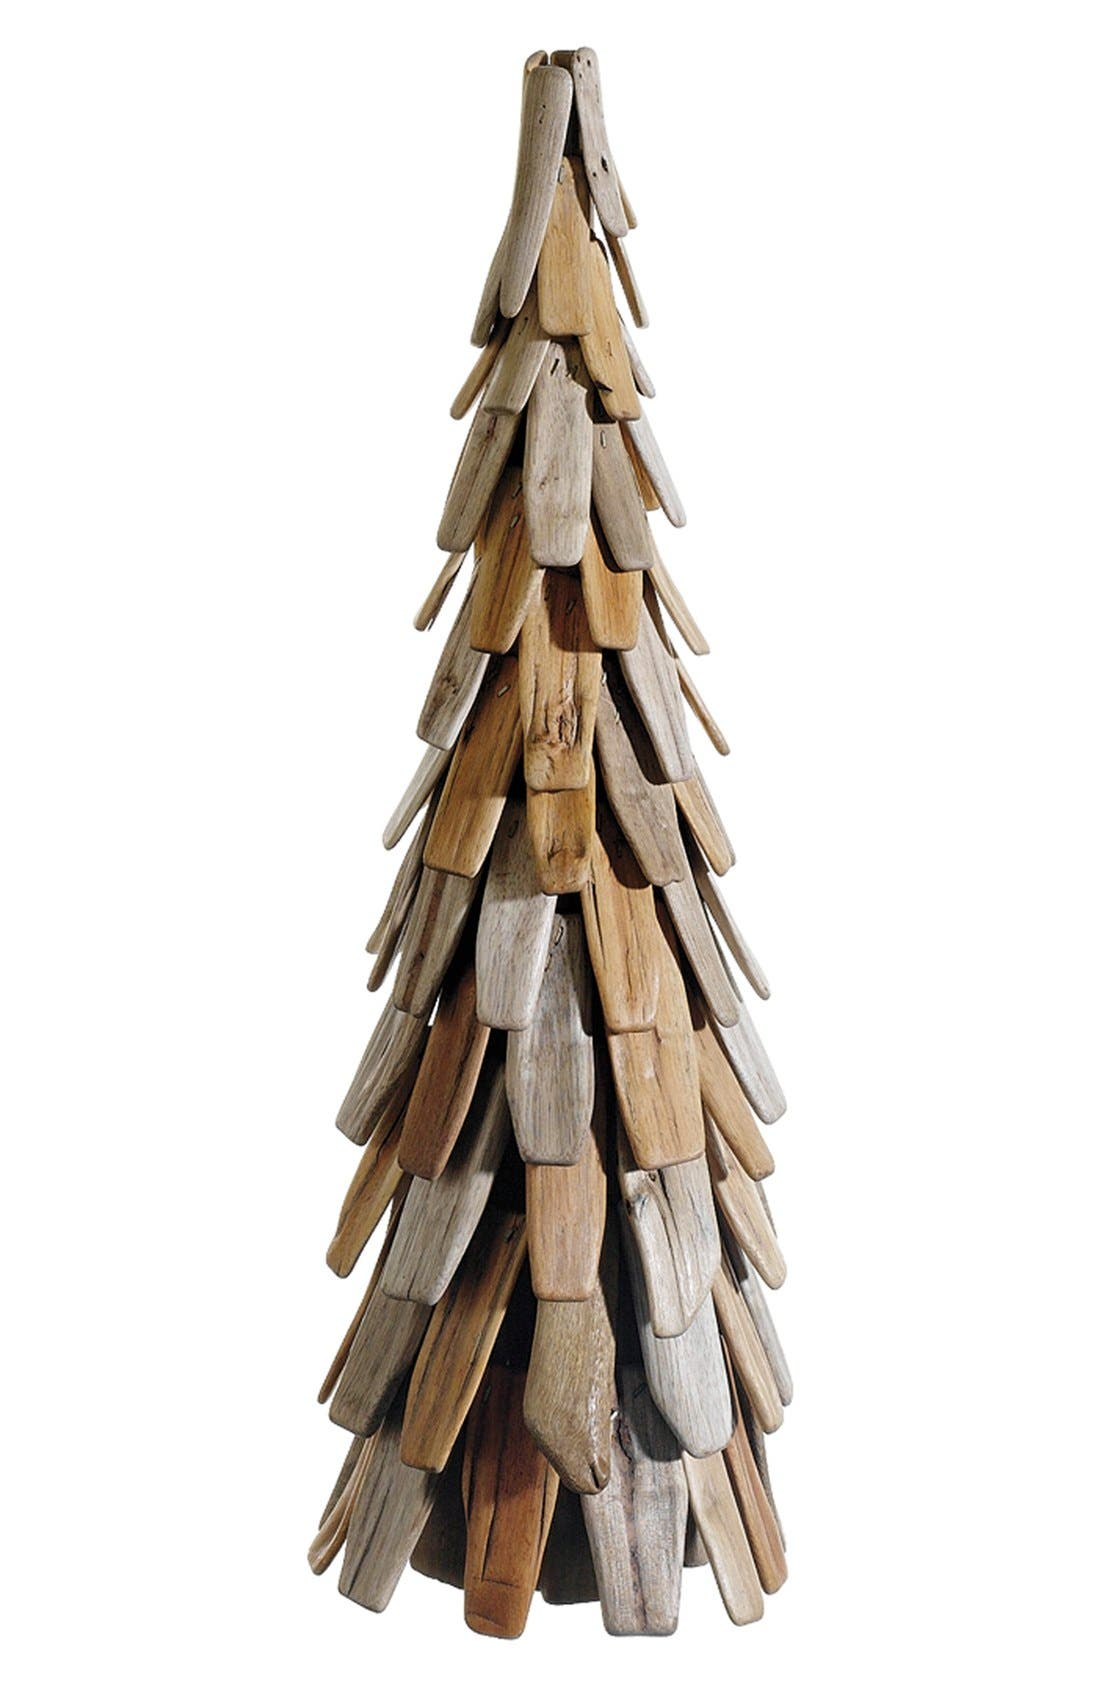 Alternate Image 1 Selected - ALLSTATE 'Driftwood' Standing Tree Decoration, Large